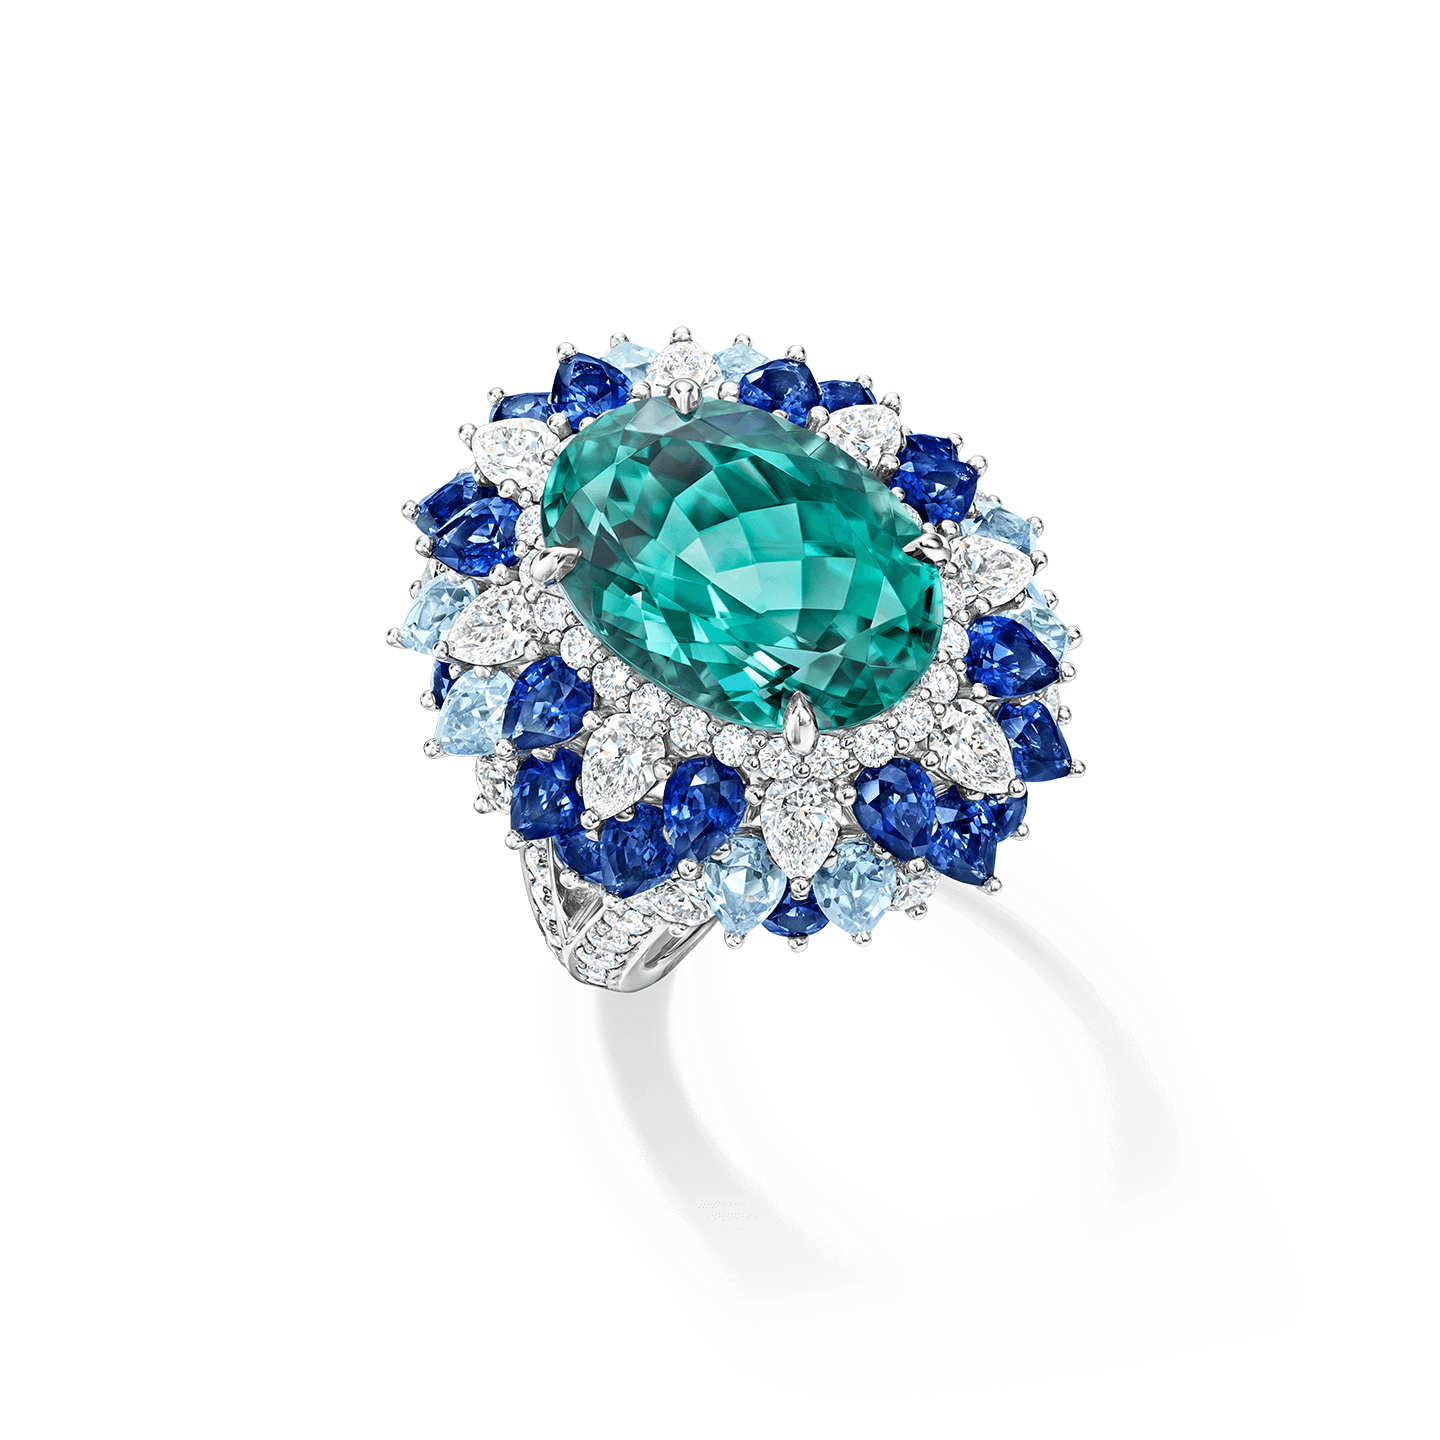 Winston Candy Blue Green Tourmaline Ring with Sapphires, Aquamarine and Diamonds